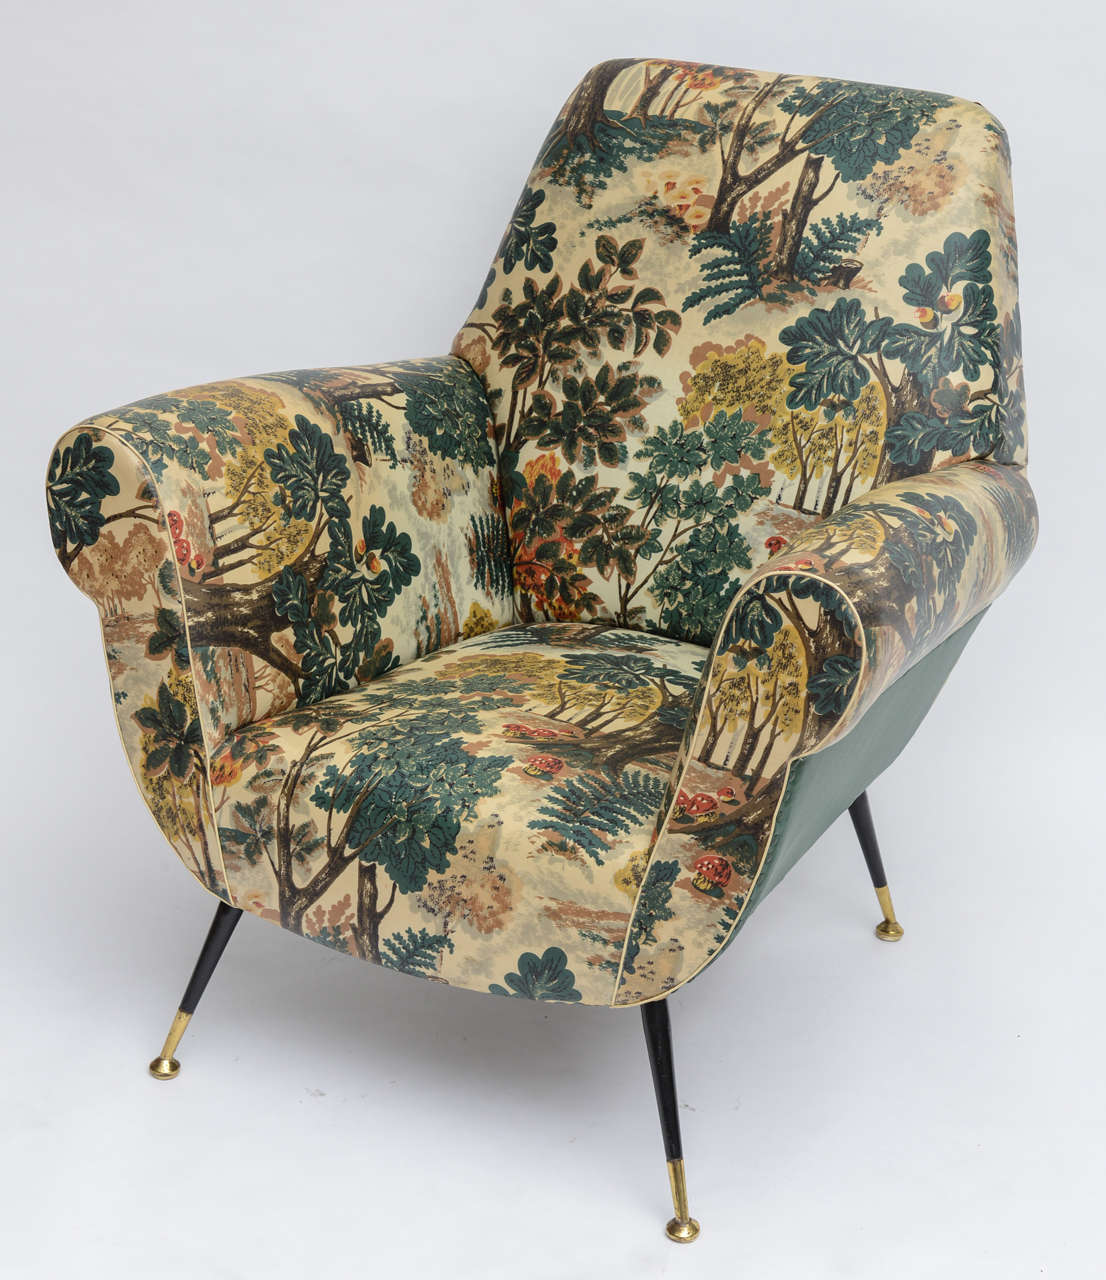 50's Italian Armchair with Original Upholstery (2 Available) 3